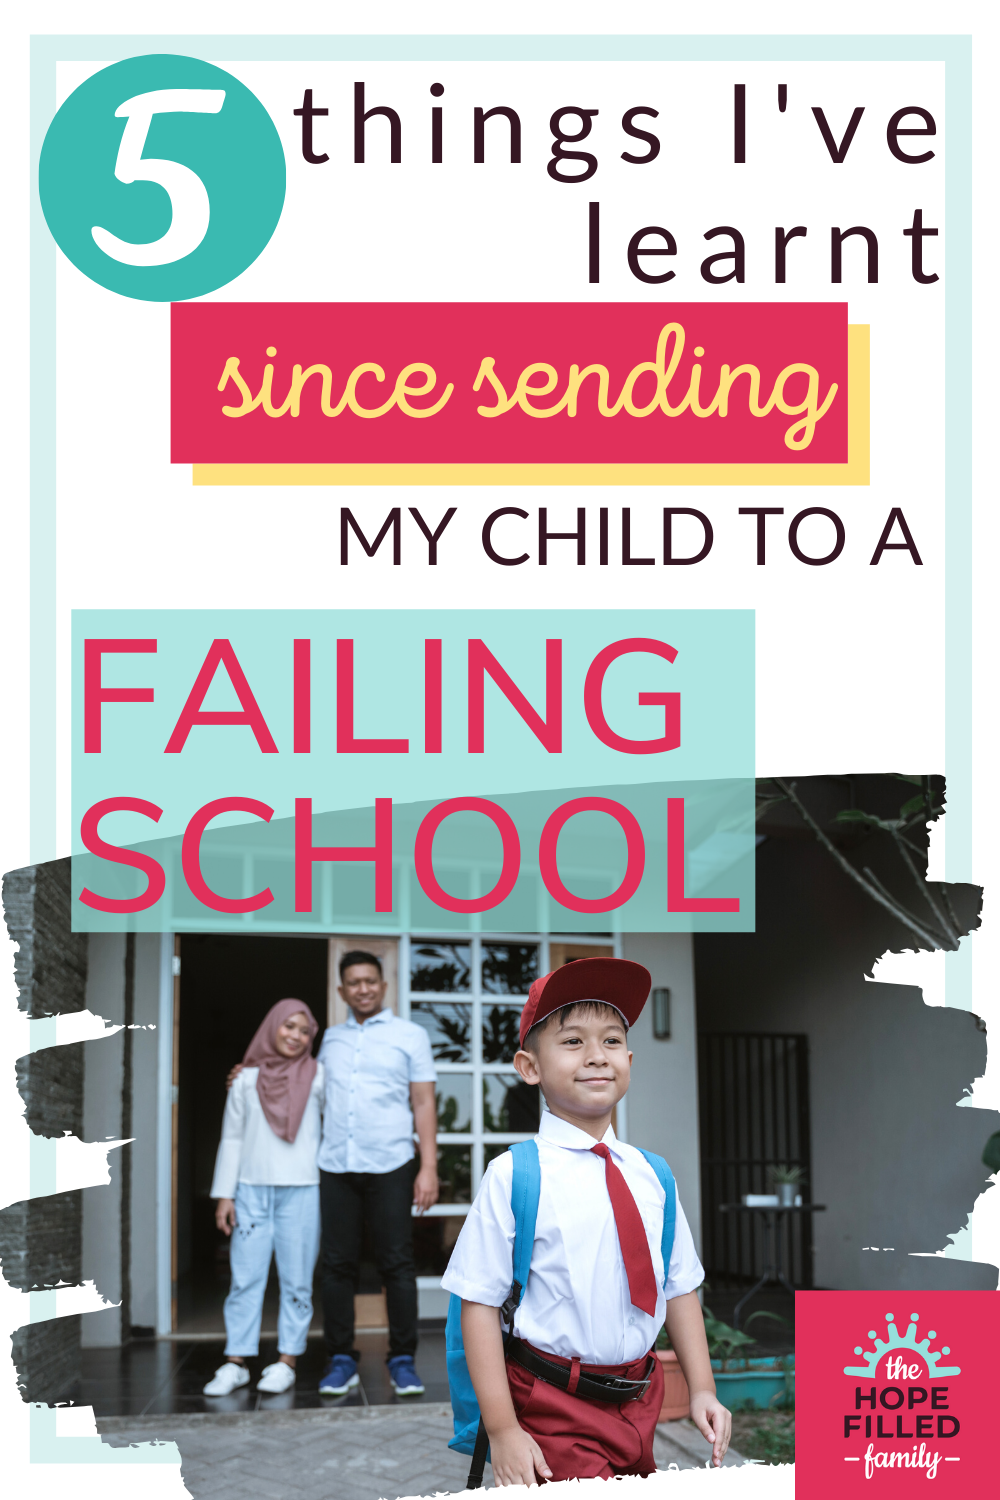 If you send your child to a failing school (a school in special measures), what will be the repercussions? Could there perhaps be some benefits?